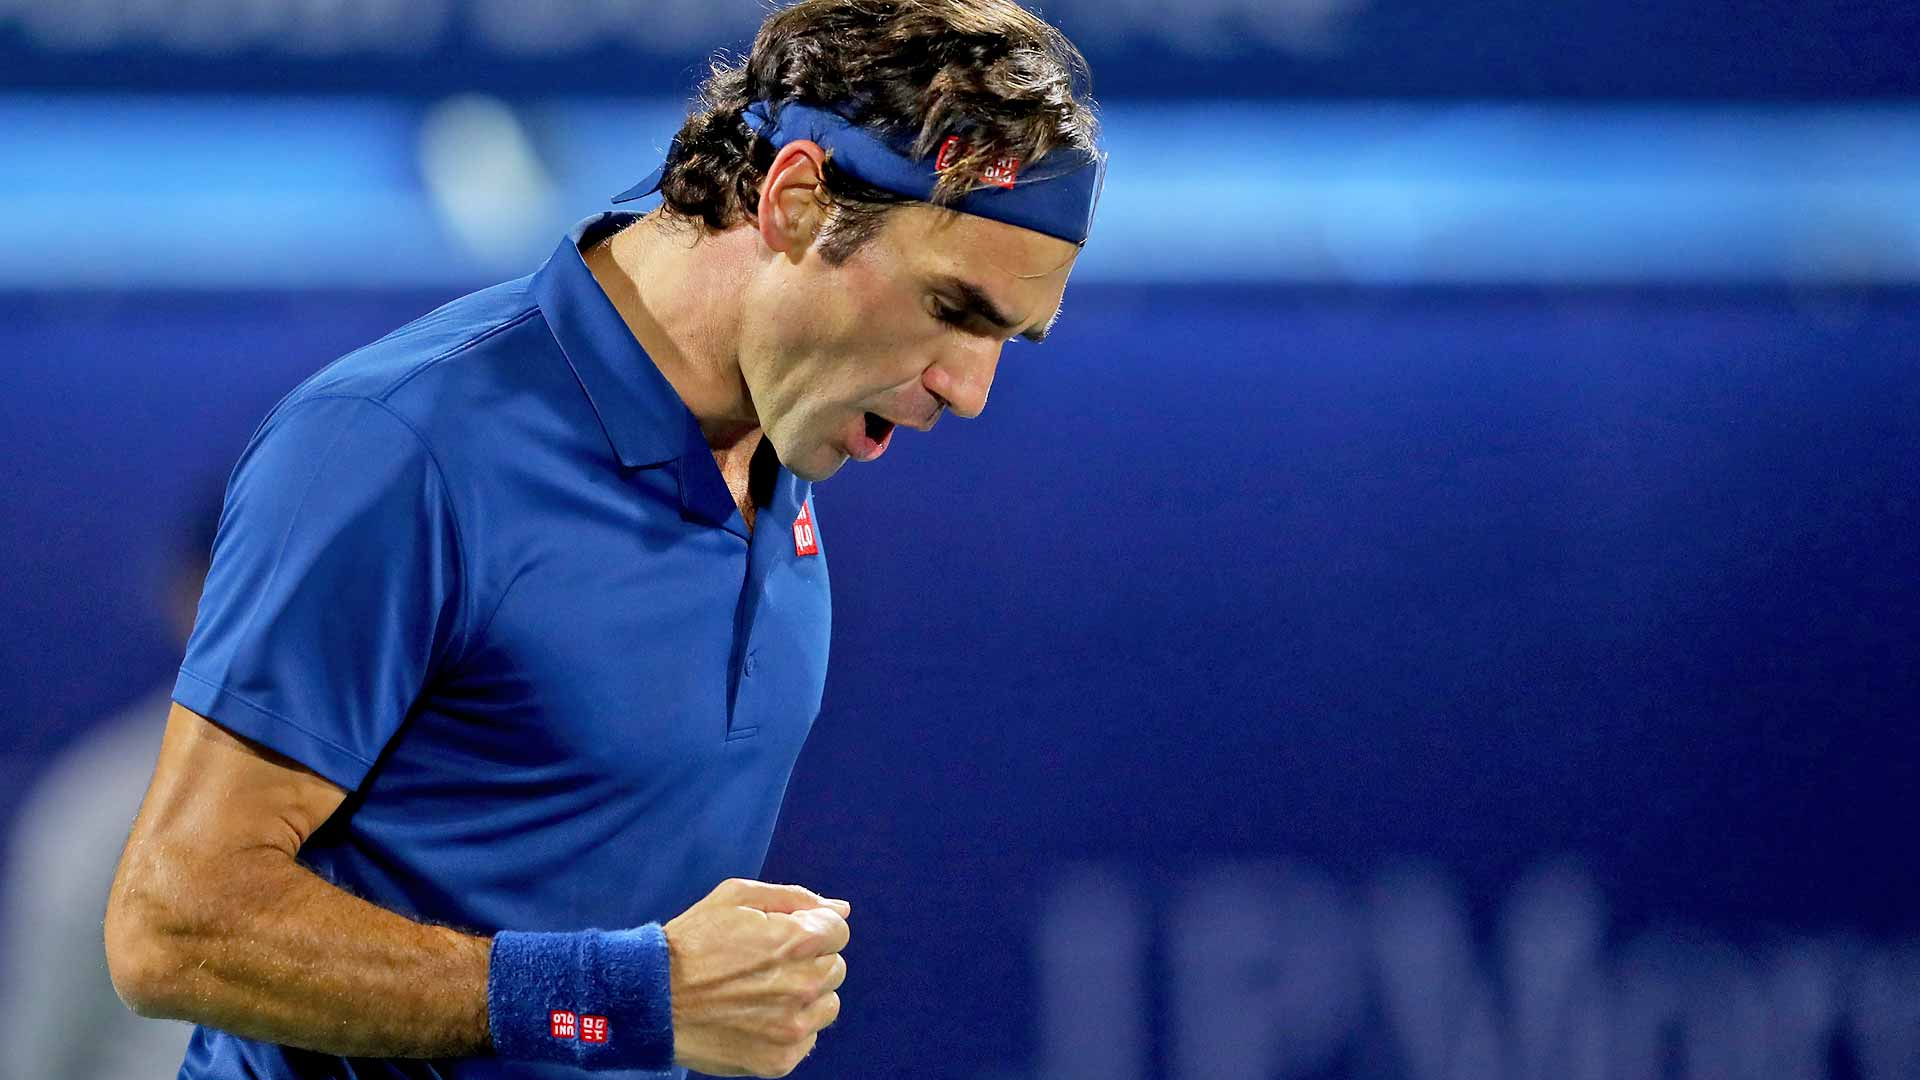 Roger Federer pumps his fist during his victory against Stefanos Tsitsipas in the Dubai final